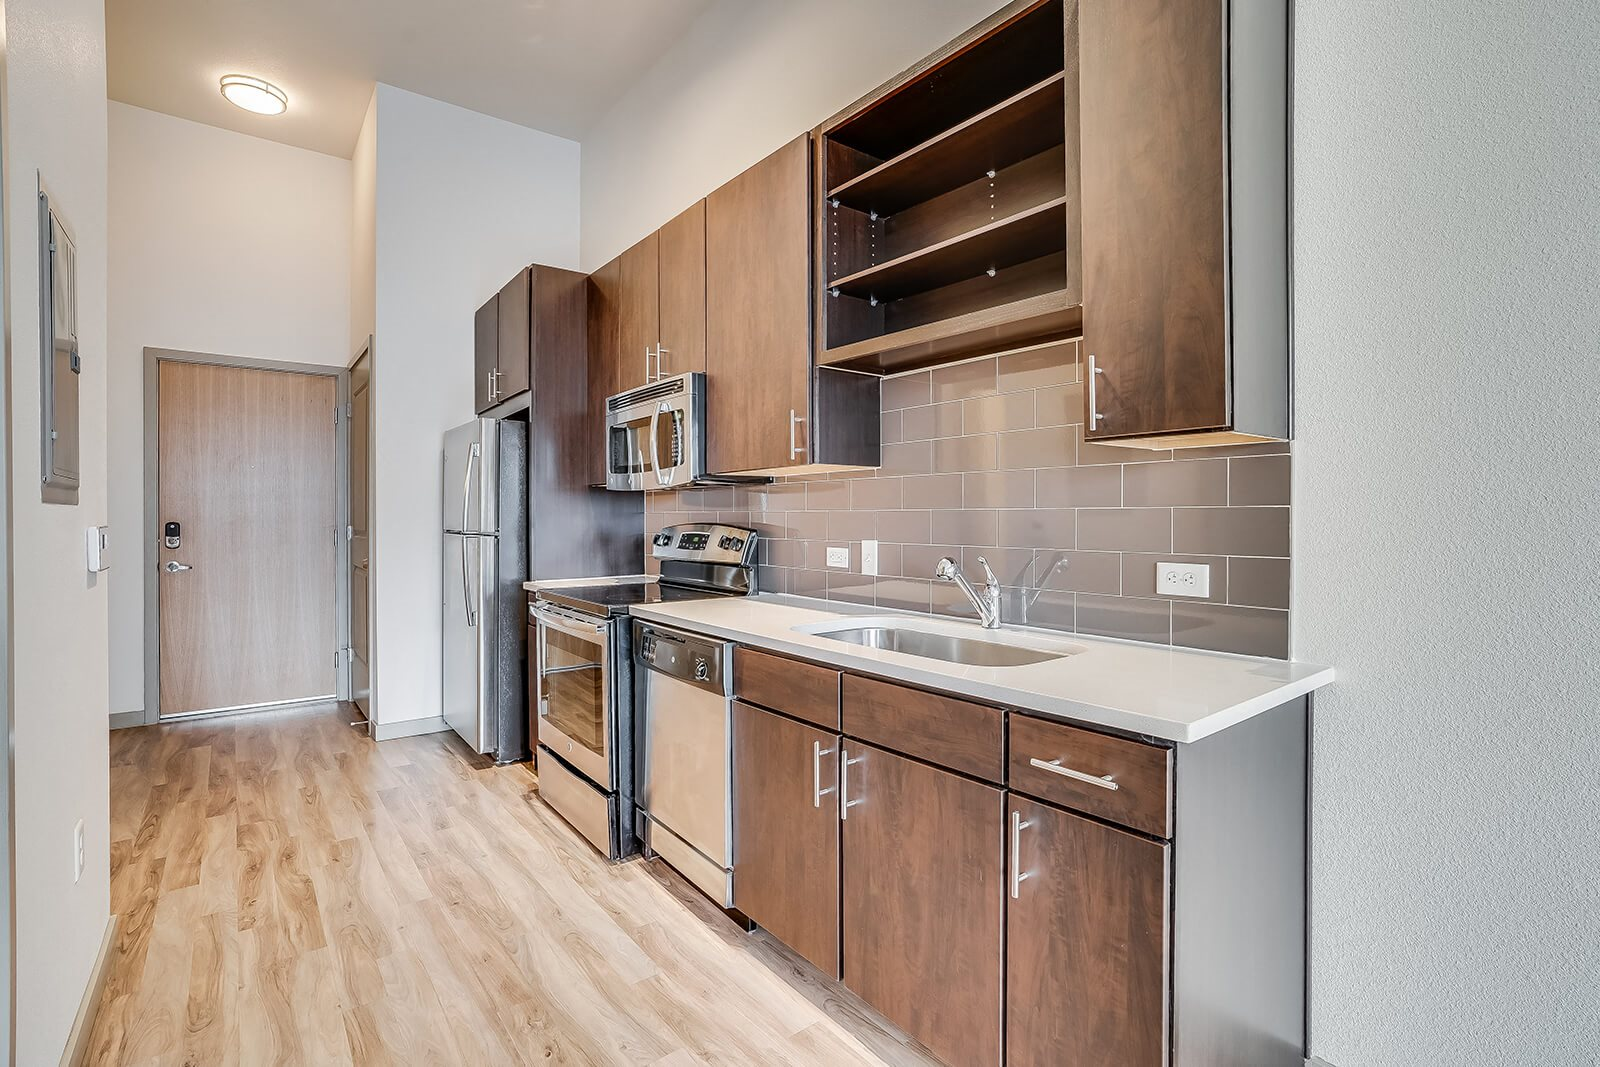 Stainless Steel Appliances and Backsplashes in Kitchen at The Casey, Denver, CO